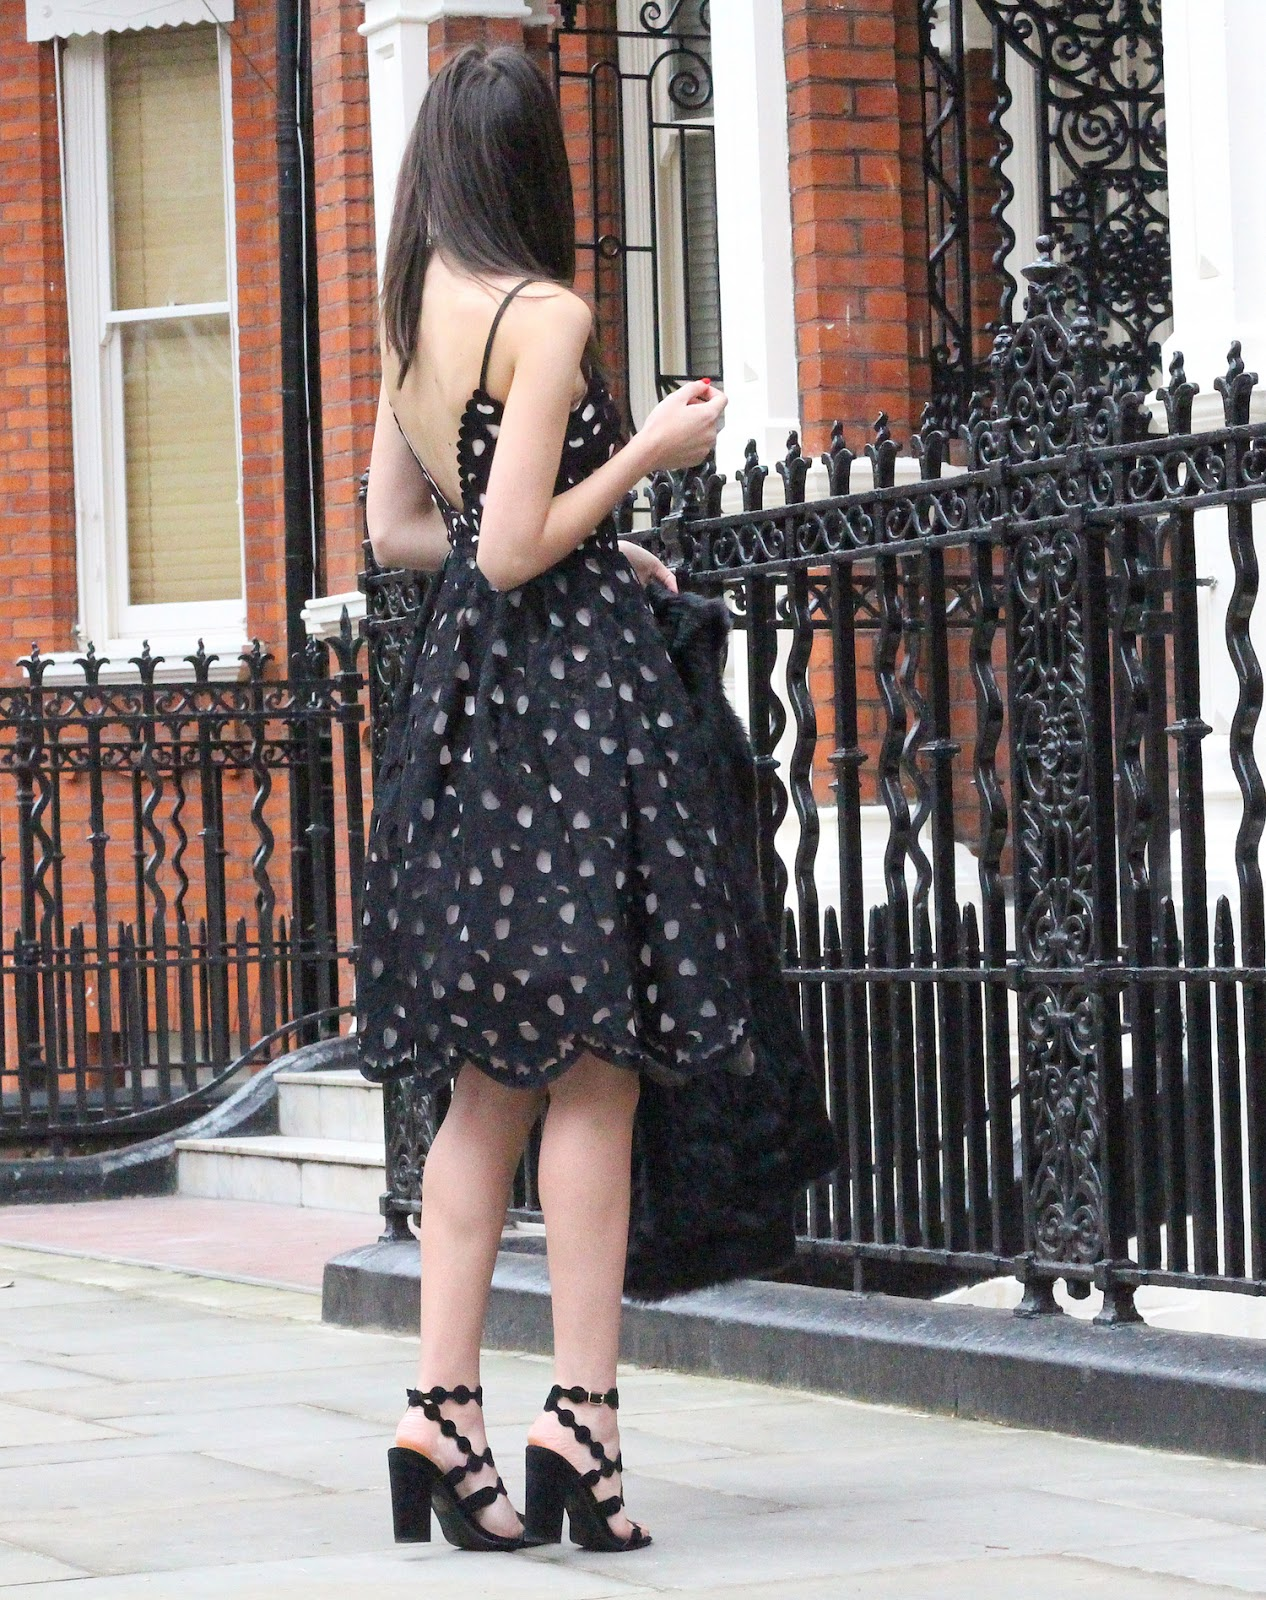 peexo wearing backless black chi chi london dress